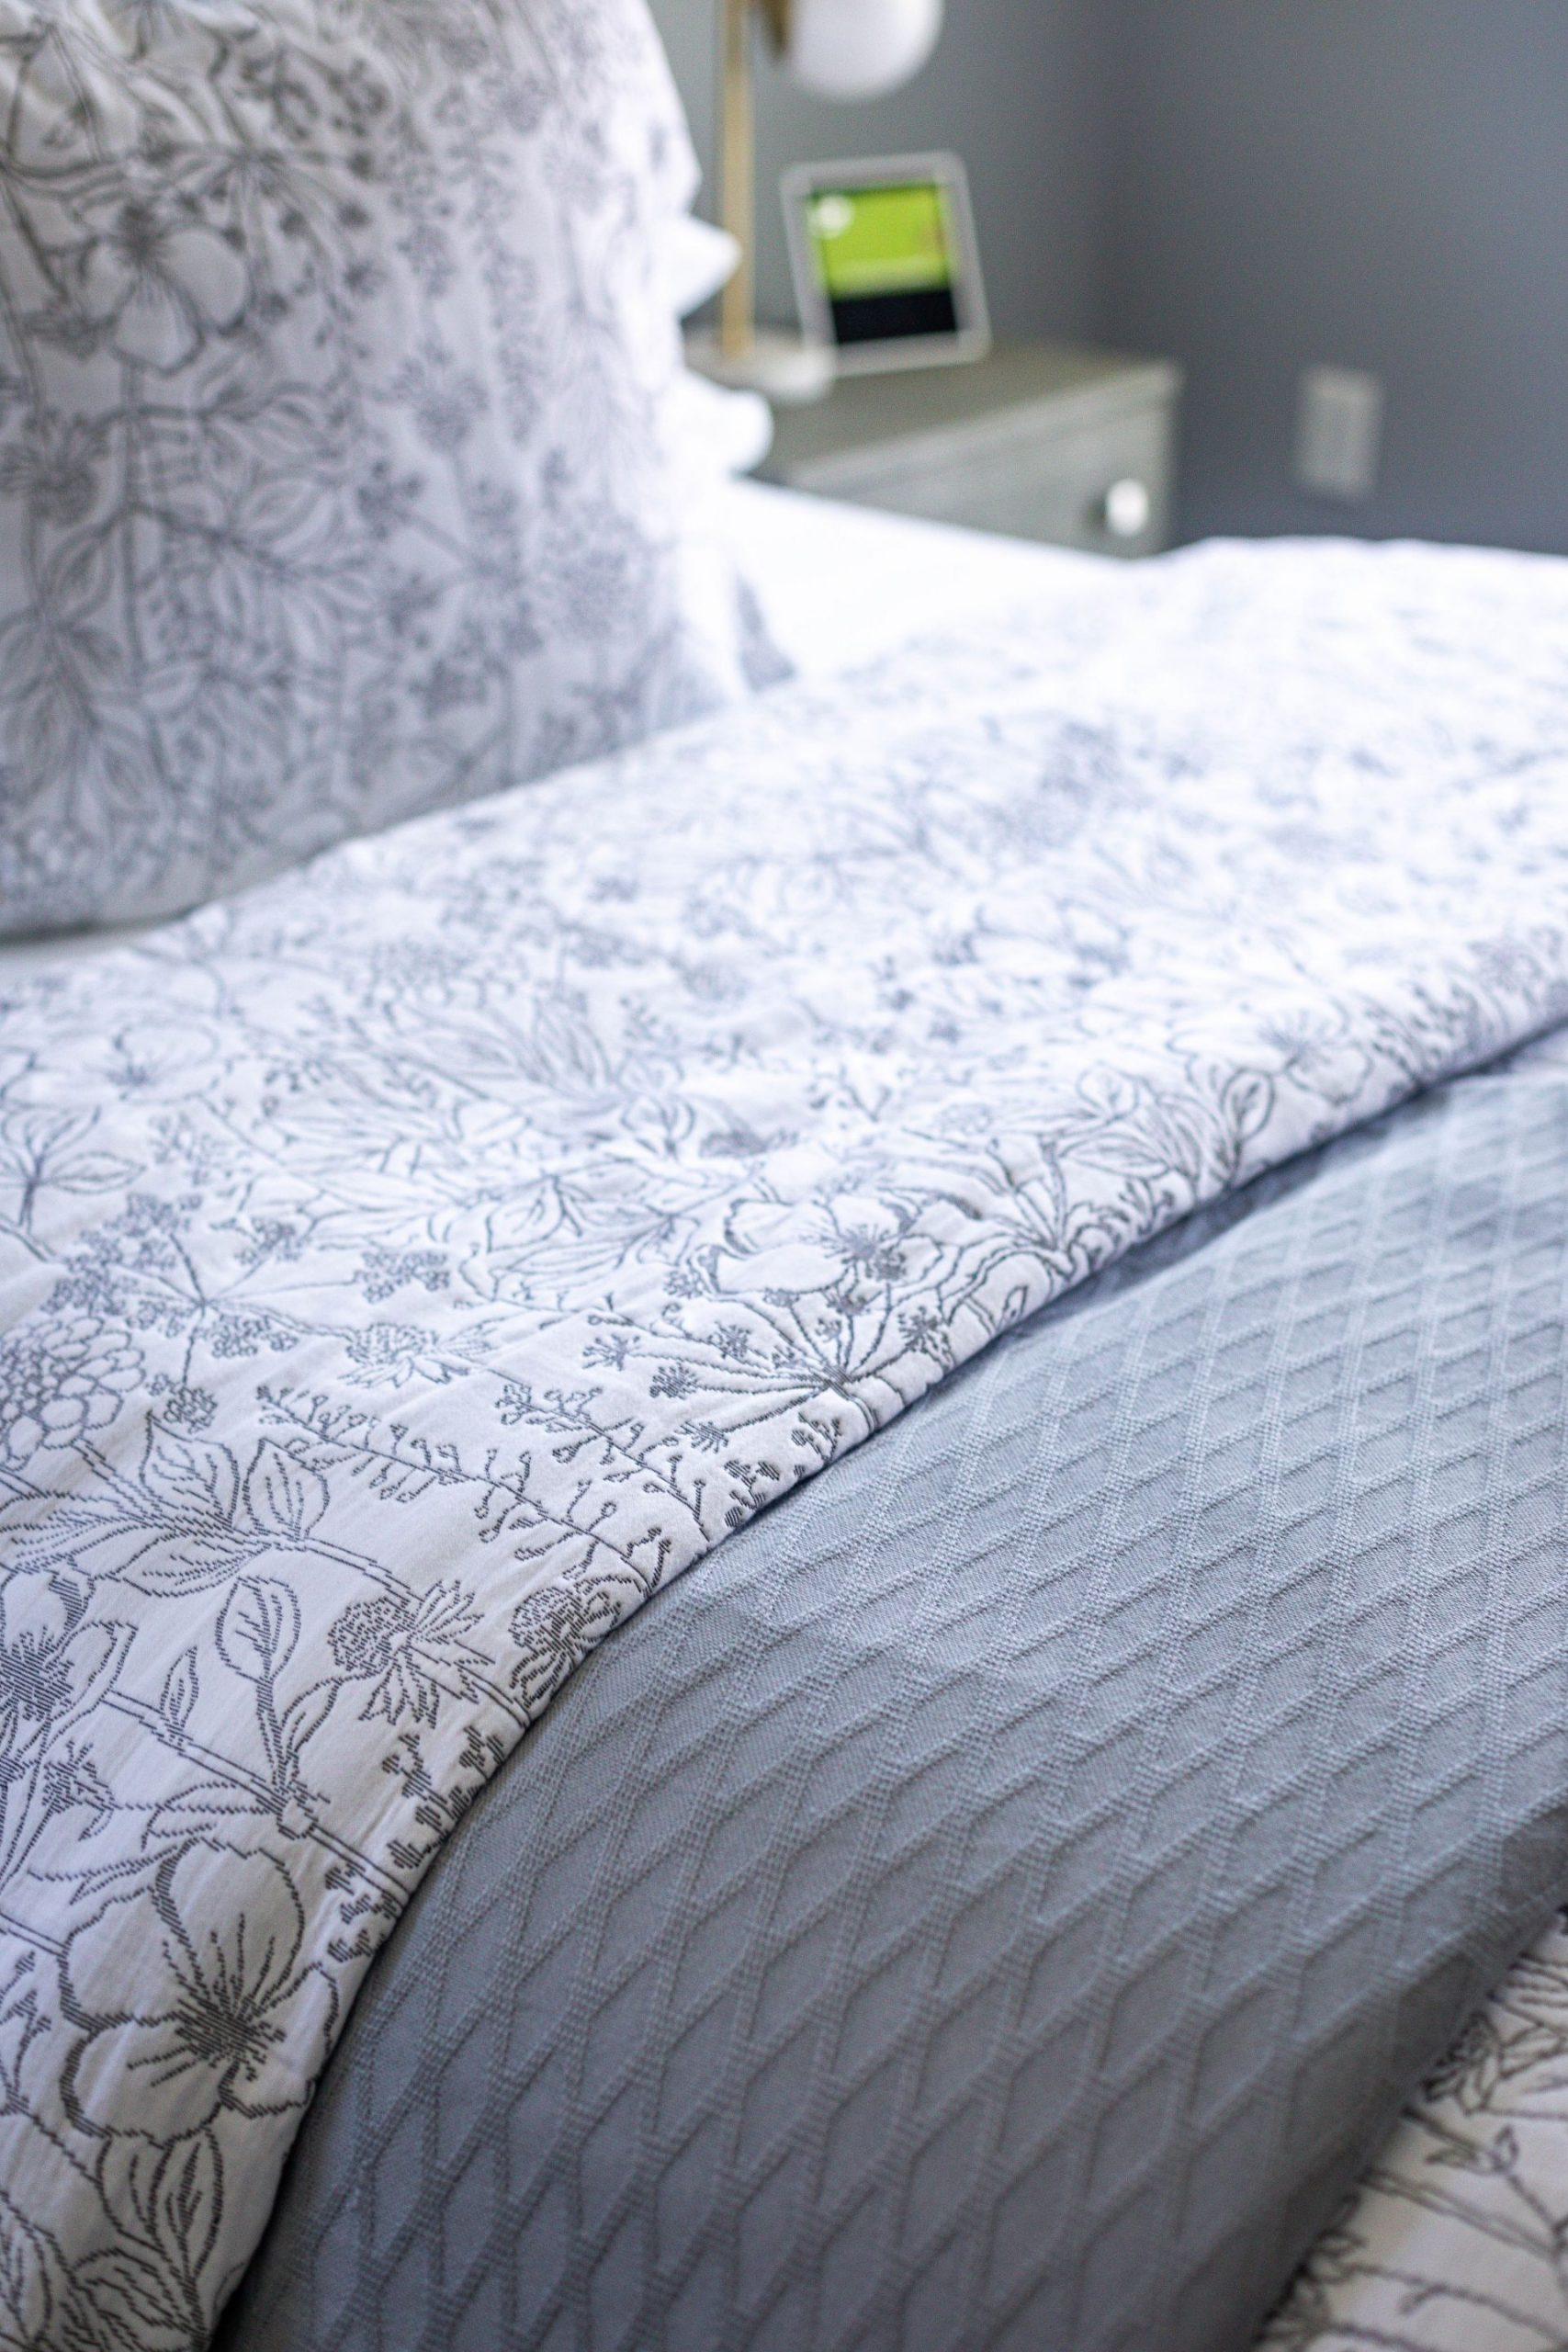 atlanta blogger updates her master suite with spring bedding from the company store, how to refresh your master bedroom, spring bedding, floral sheets, linen sheets, the company store, how to create the perfect master bedroom, how to create the perfect bed